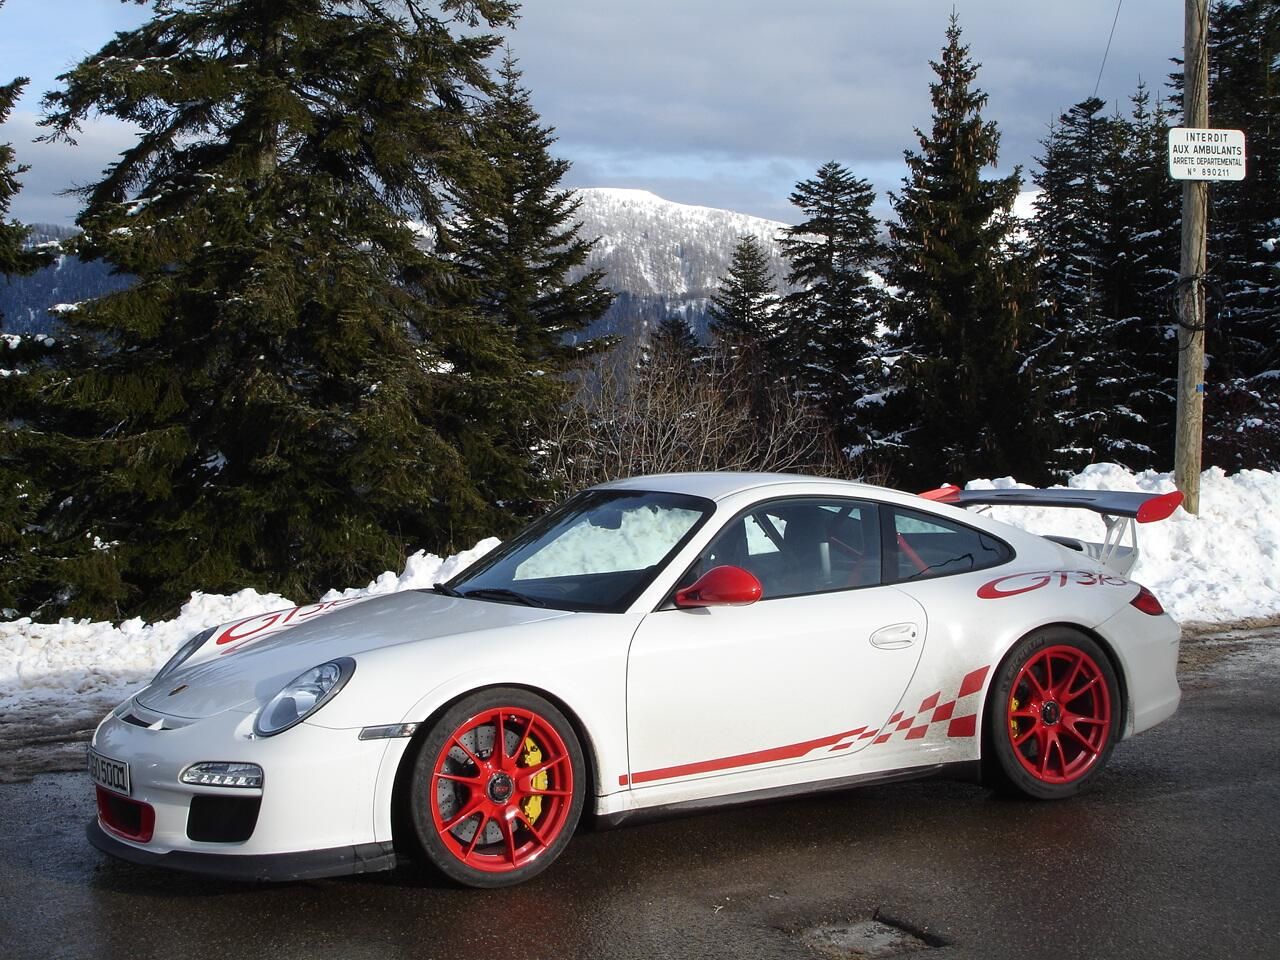 Monte Carlo is first round of #WRC & reminds us of the time a #Porsche 911 #GT3 RS drove the Col de Turini http://t.co/L18vwO4FC1